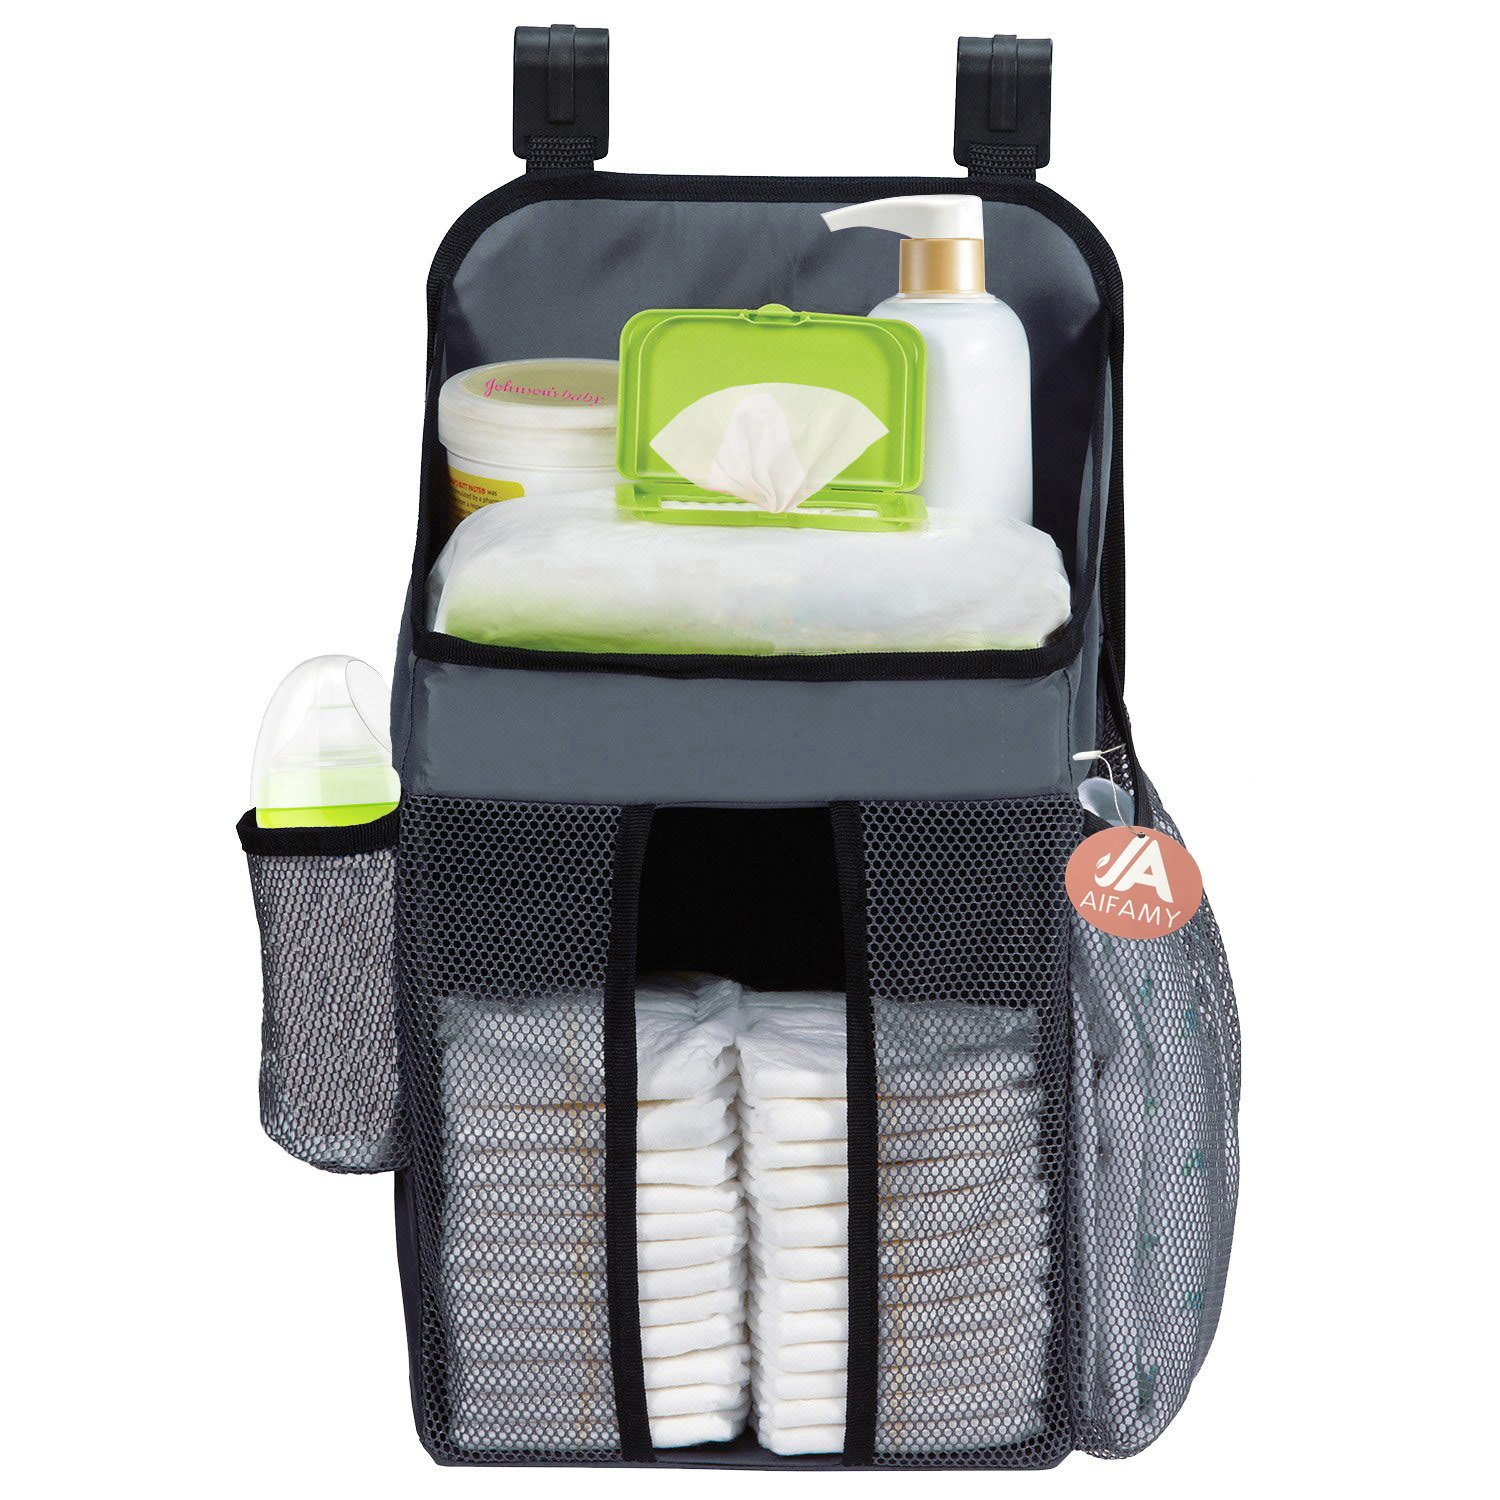 Hanging Diaper Organizers Fits All Crib Strollers Playards Nursery Storage A AIFAMY